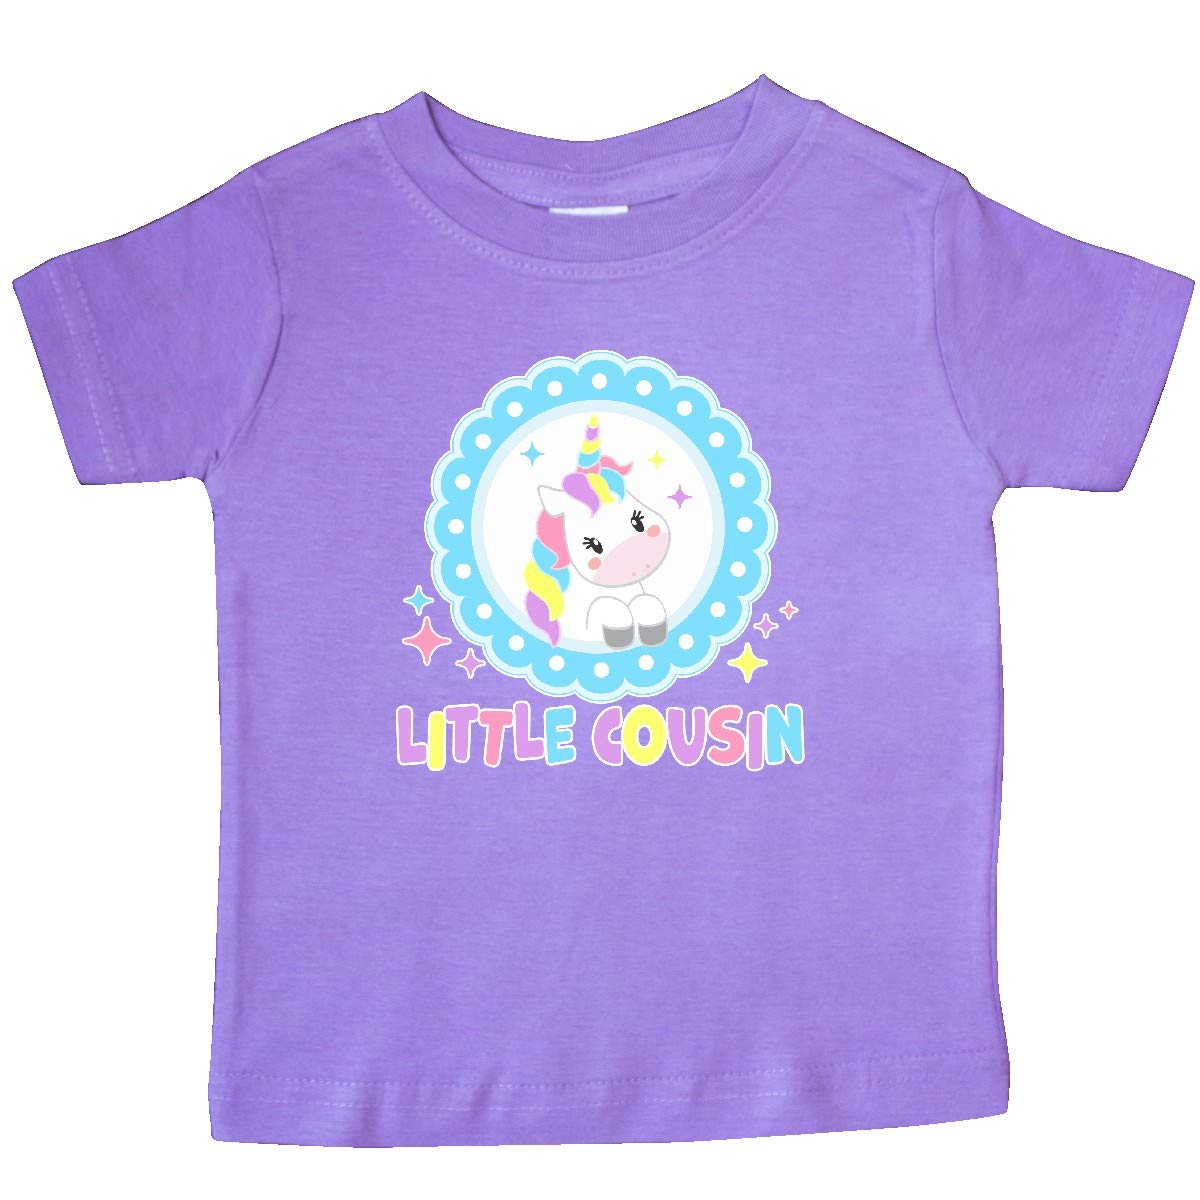 inktastic Little Cousin Cute Unicorn Baby T-Shirt